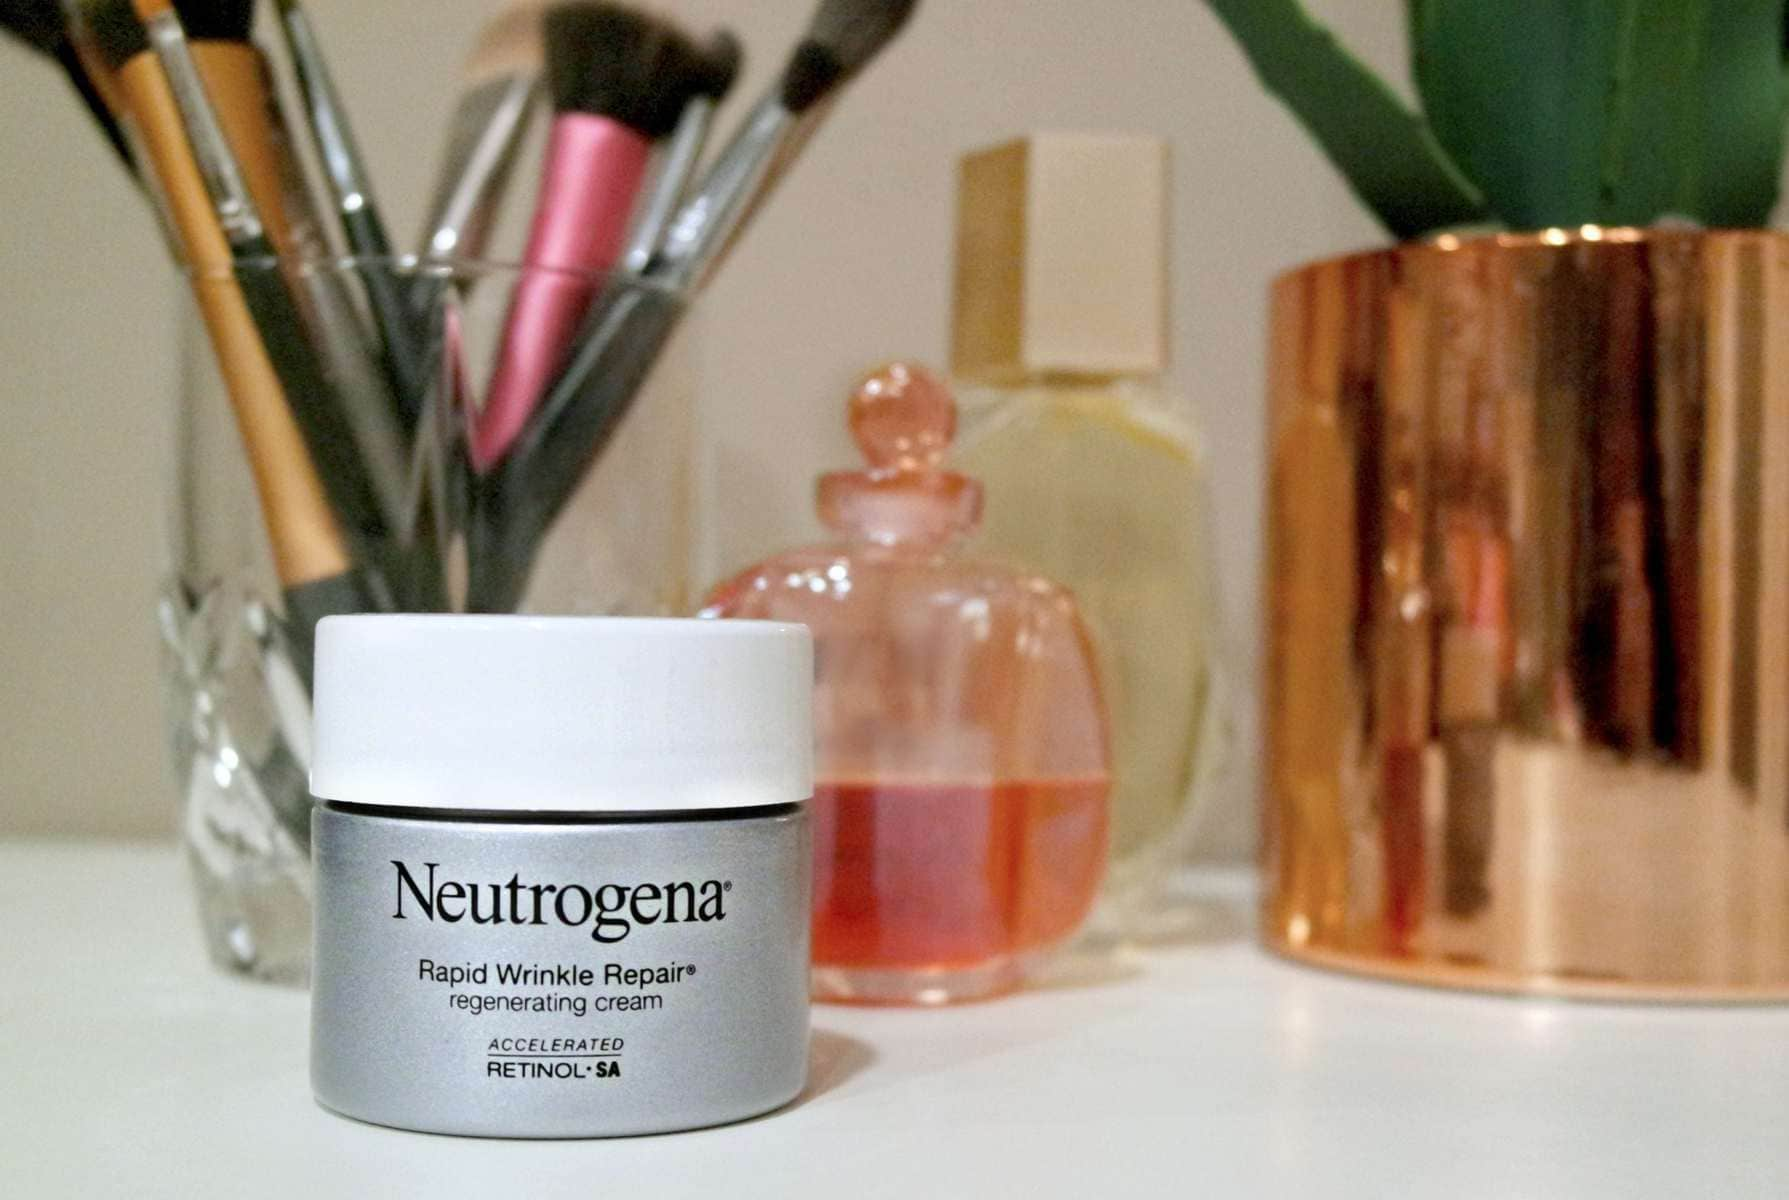 Neutrogena-Rapid-Wrinkle-Repair-Regenerating-Cream